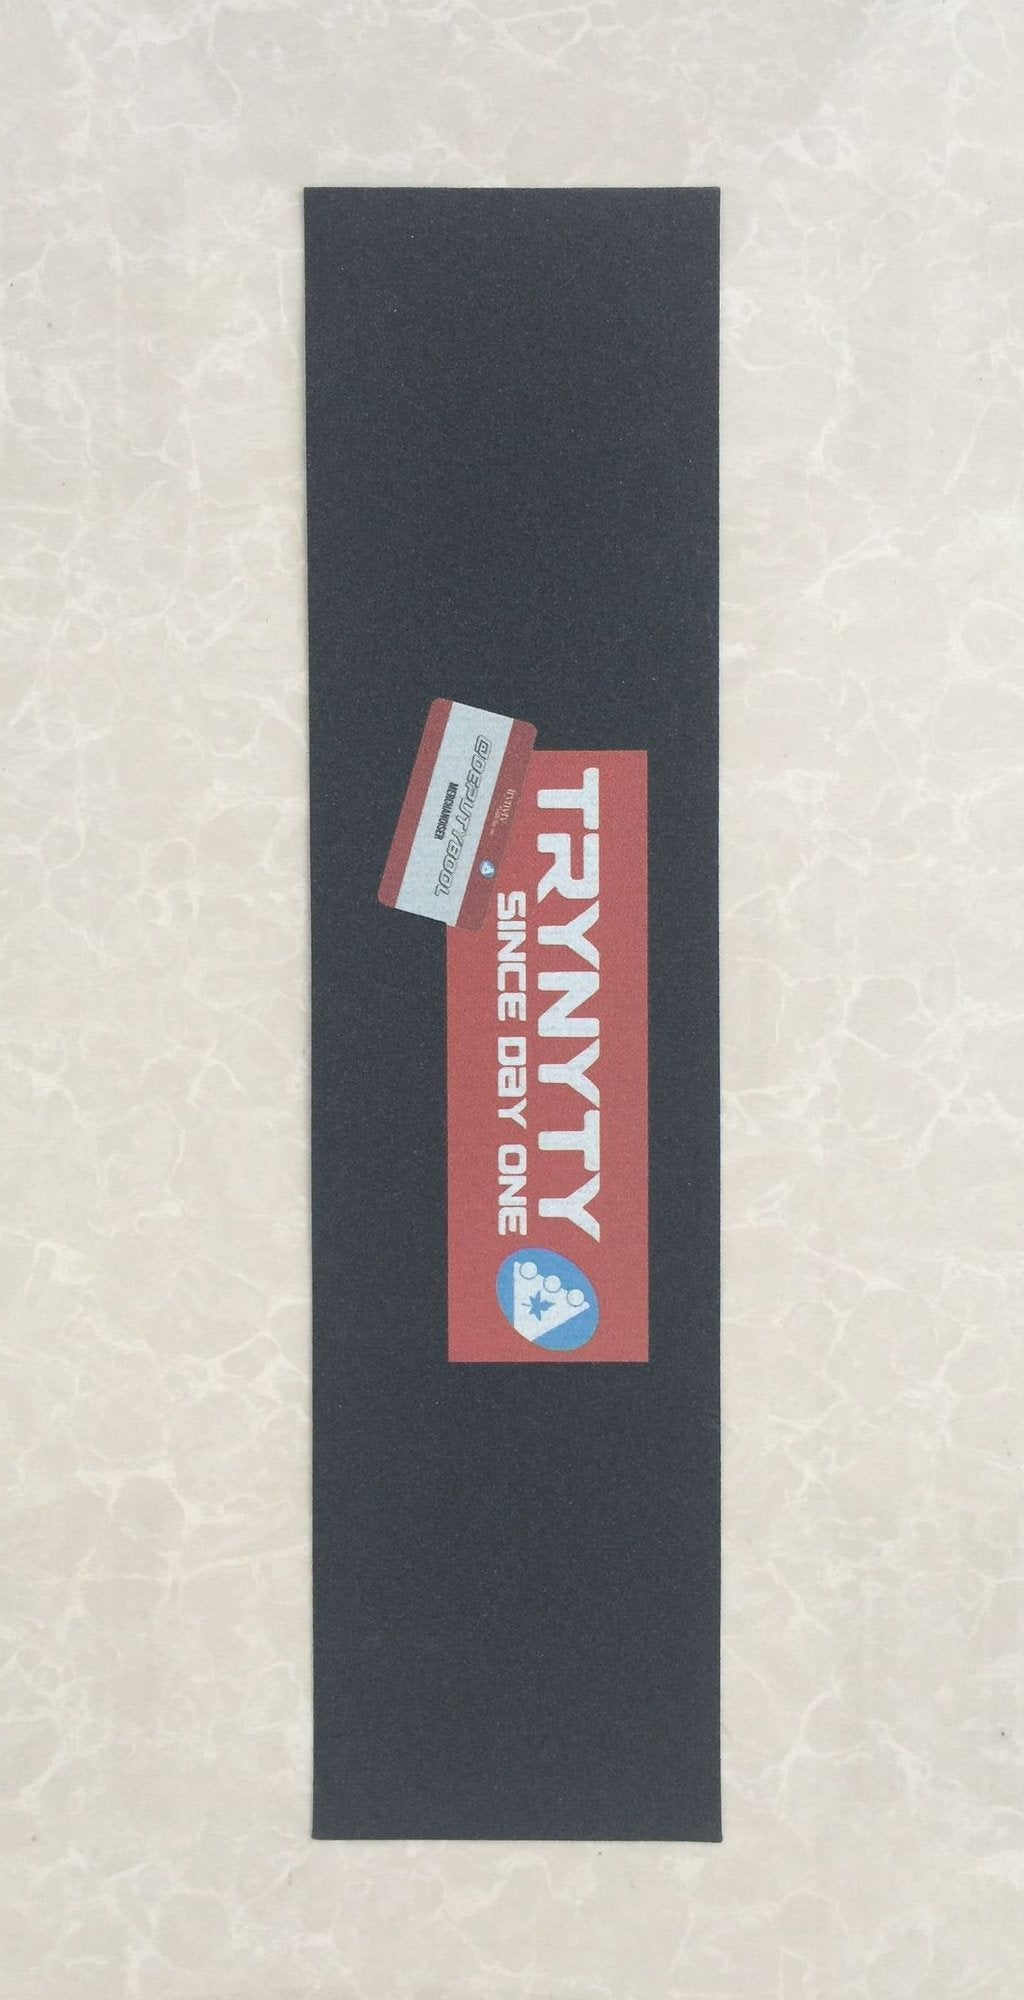 Trynyty Ethan Kirk Signature Griptape [6″ x 24″]